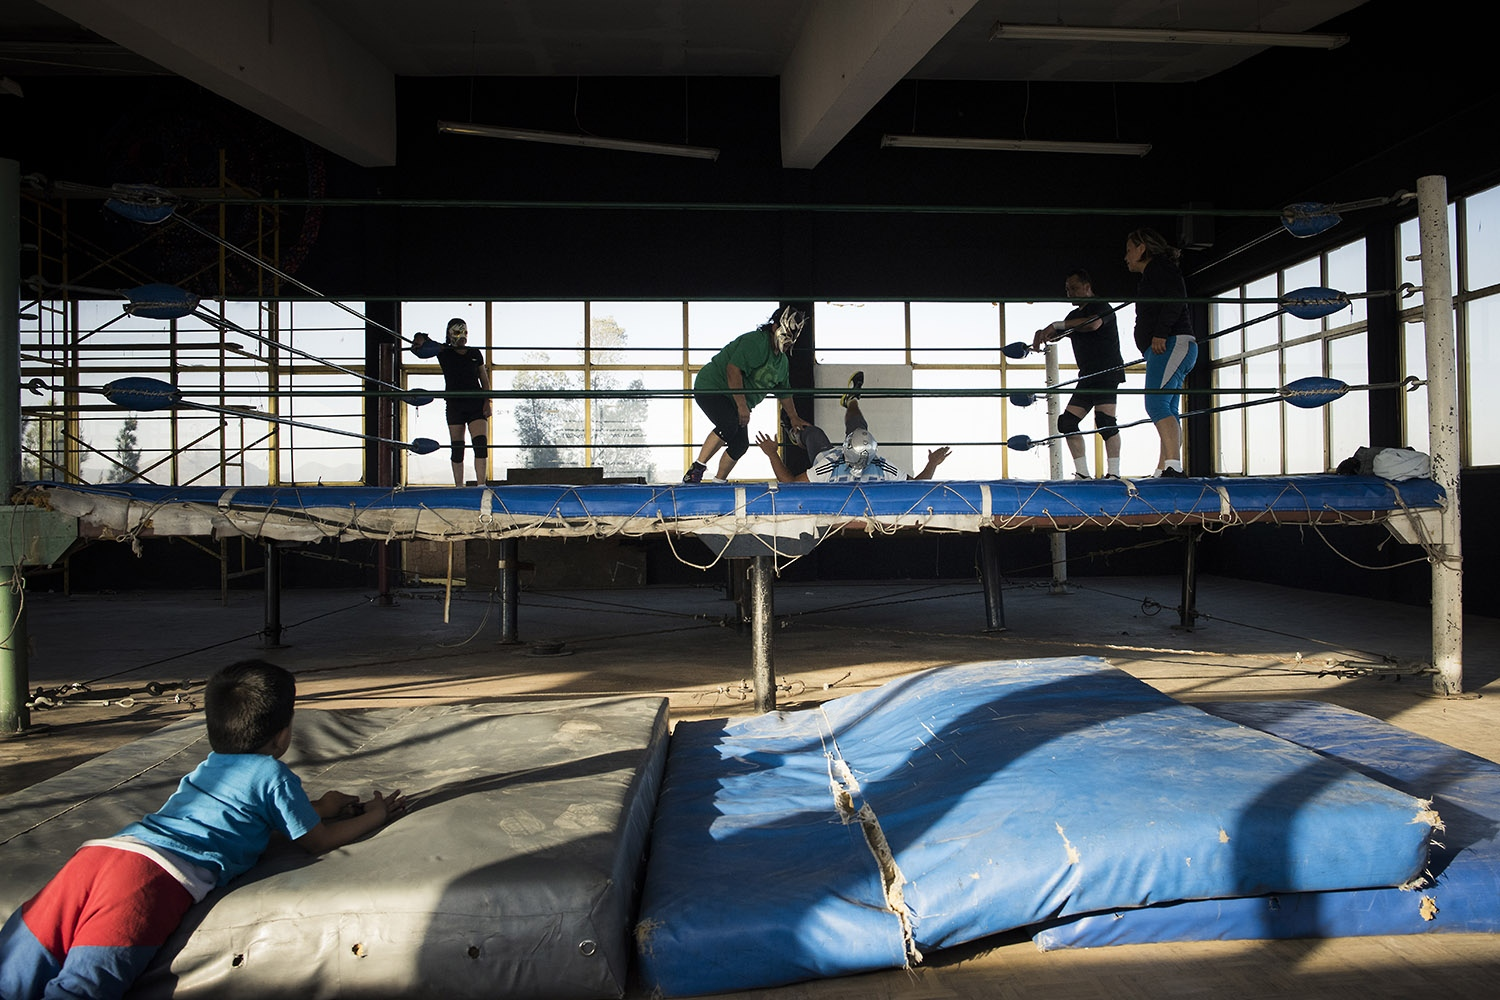 A child is watching his mother's training in a Mexico City's wrestling gym.